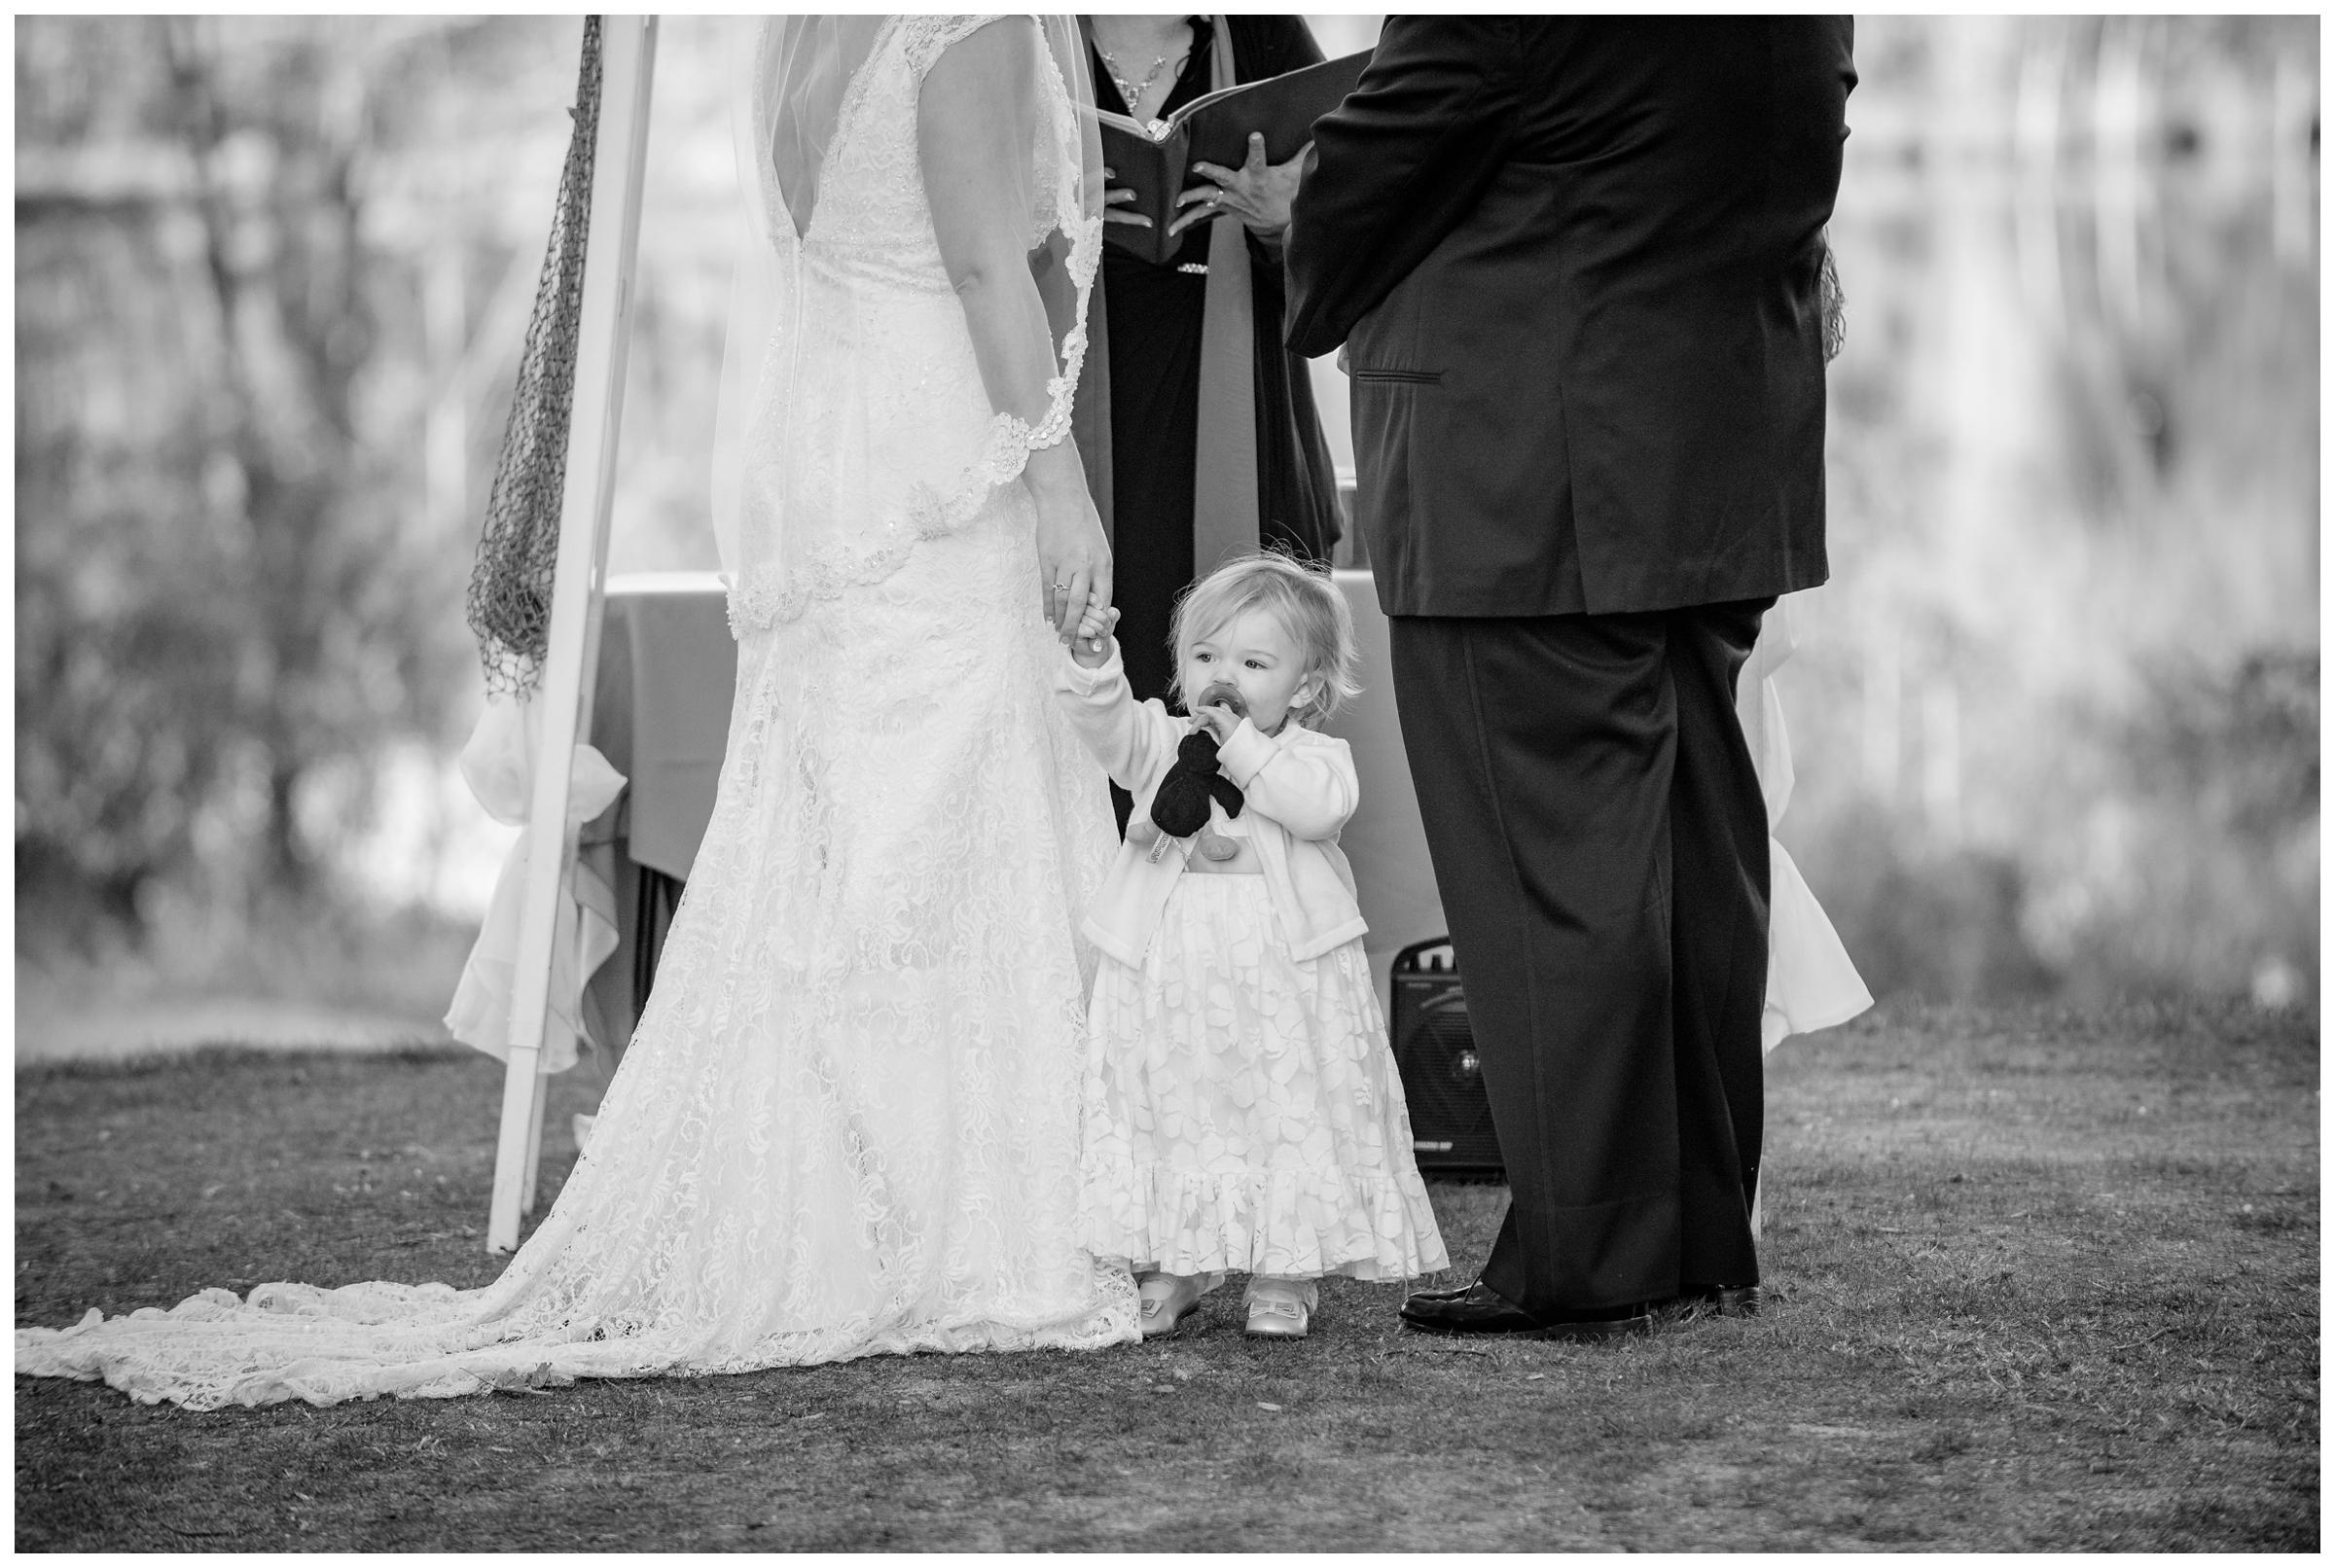 bride and groom's daughter standing with them during wedding ceremony